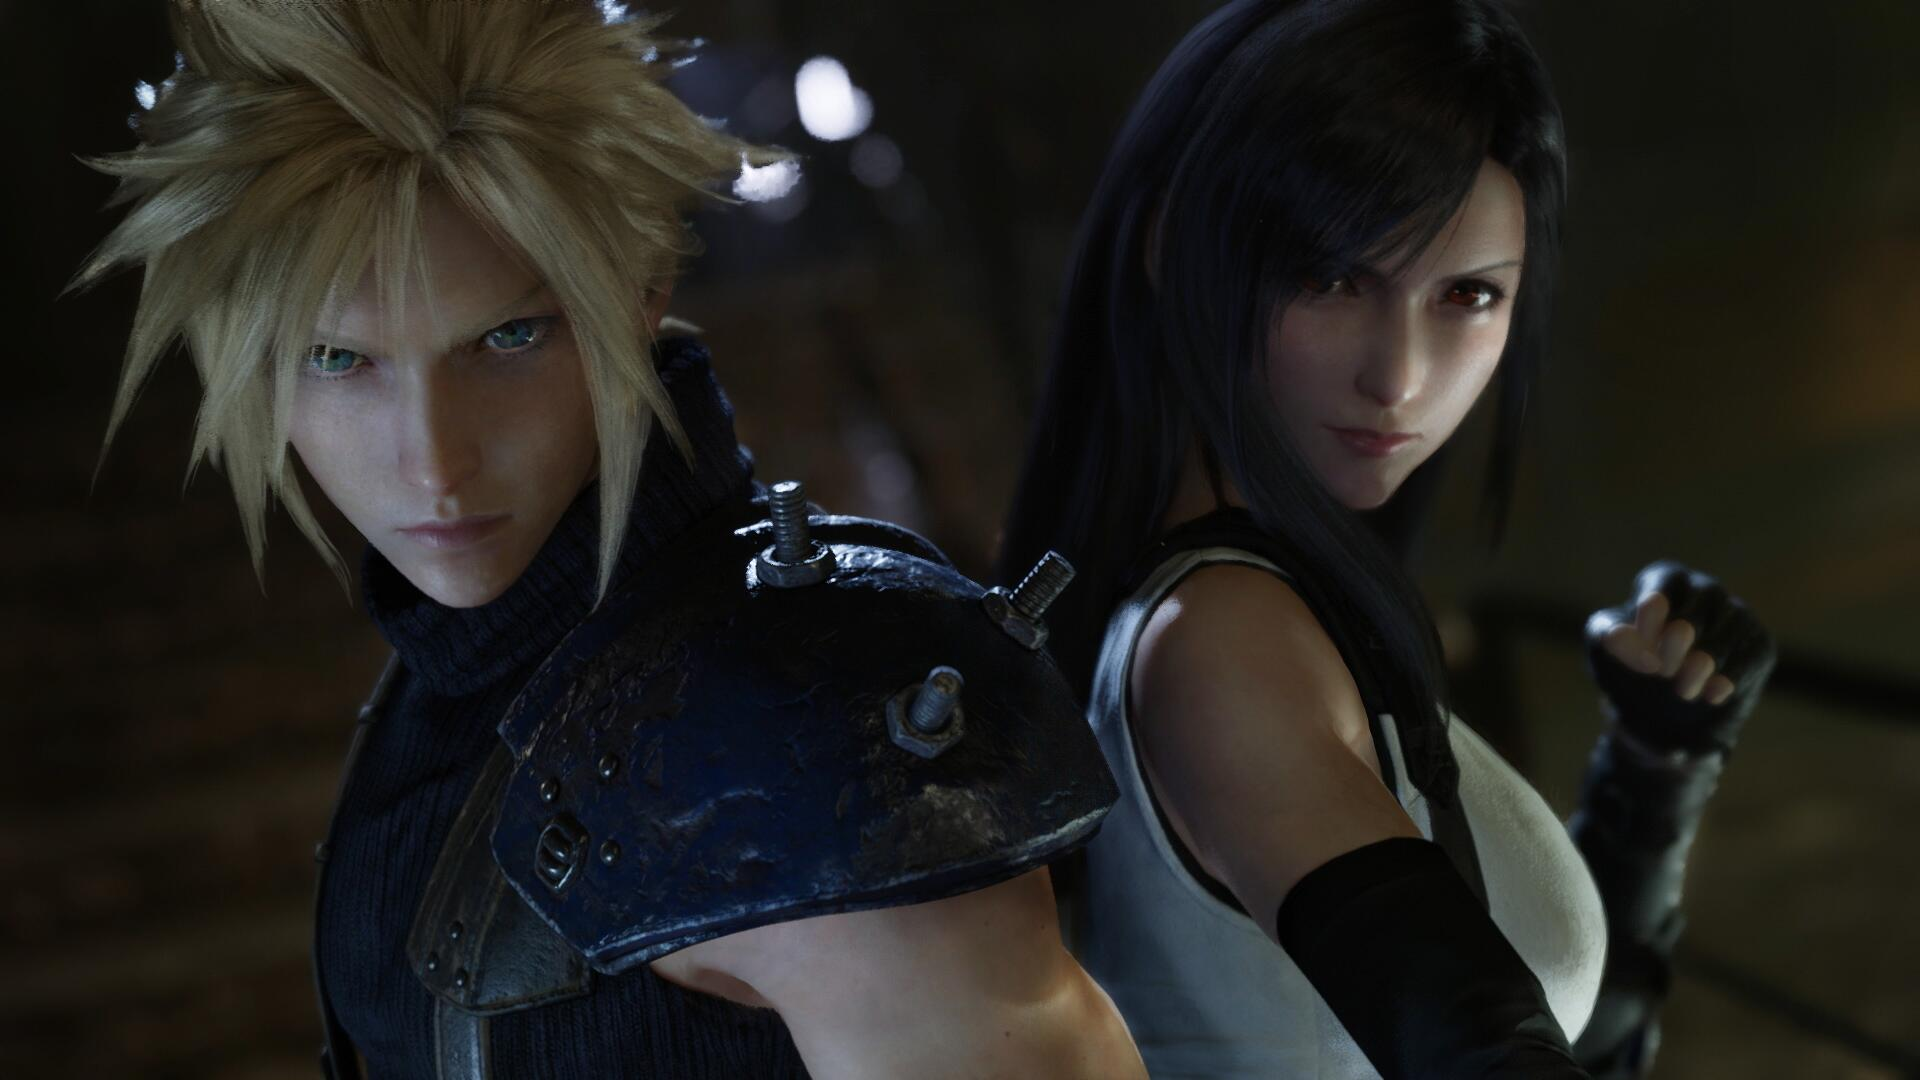 The Final Fantasy 7 Remake Soundtrack Sounds Different So Far, But in A Good Way